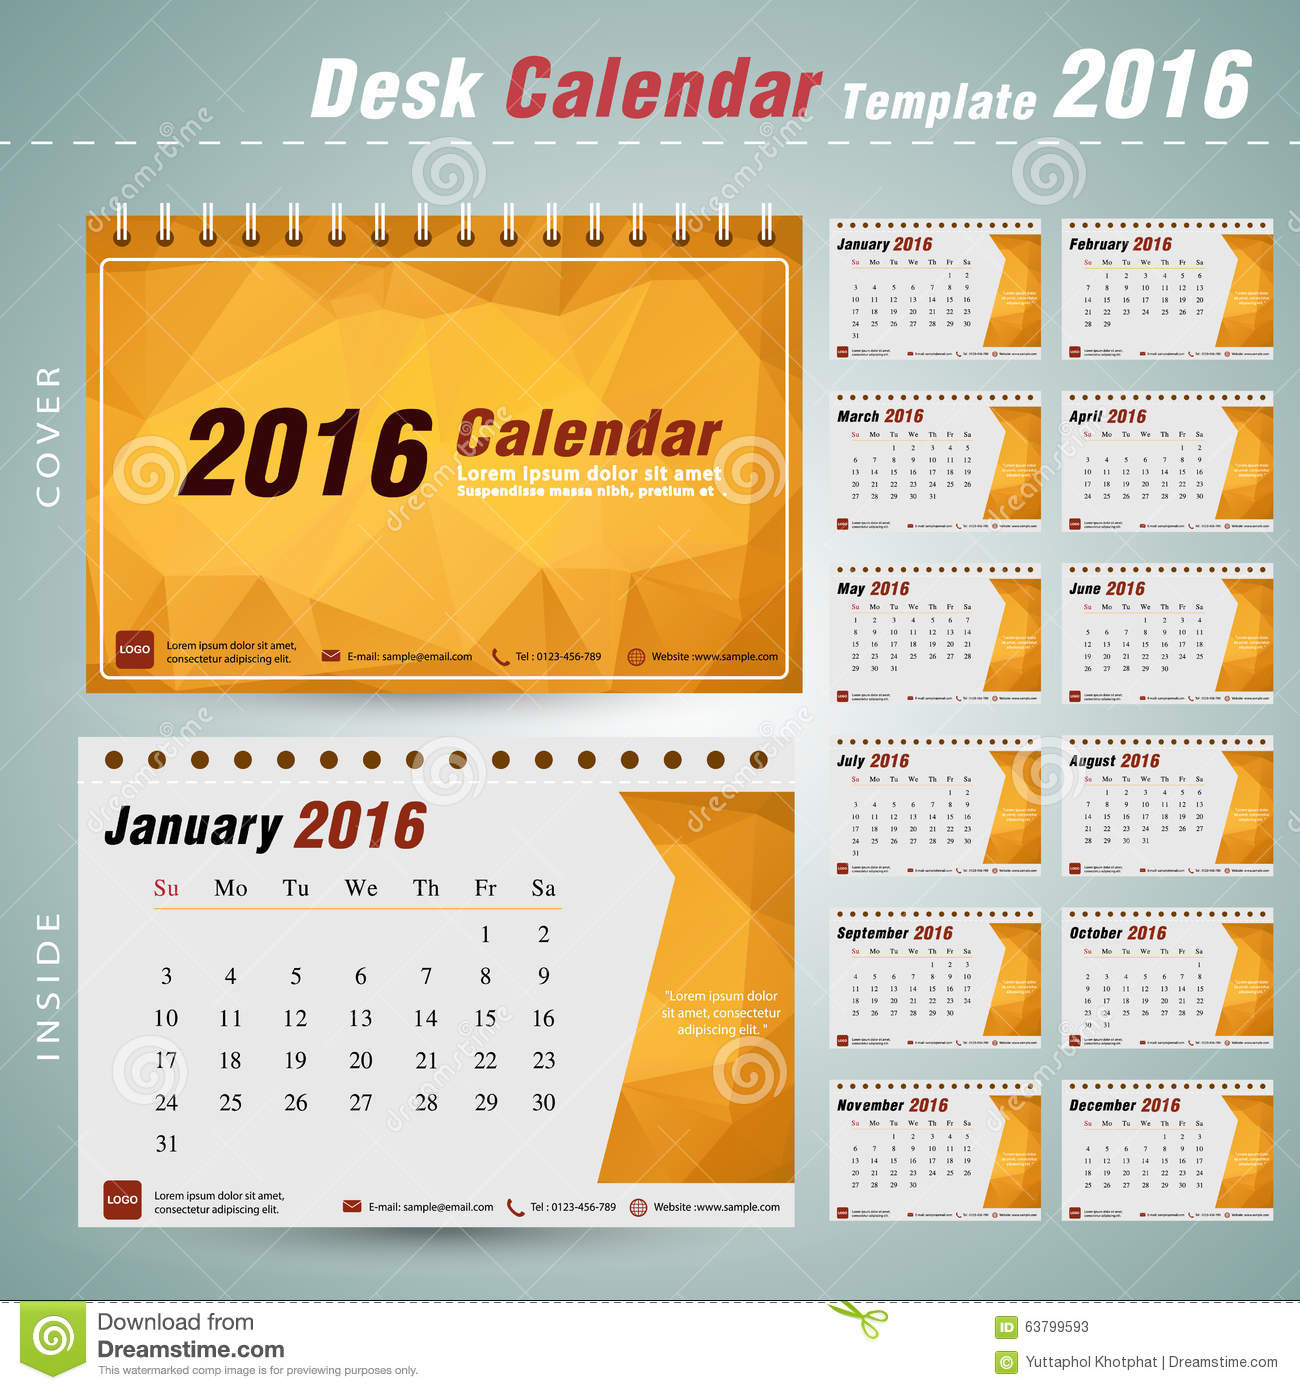 Calendar Design With Pictures : Desk calendar vector design template with abstract